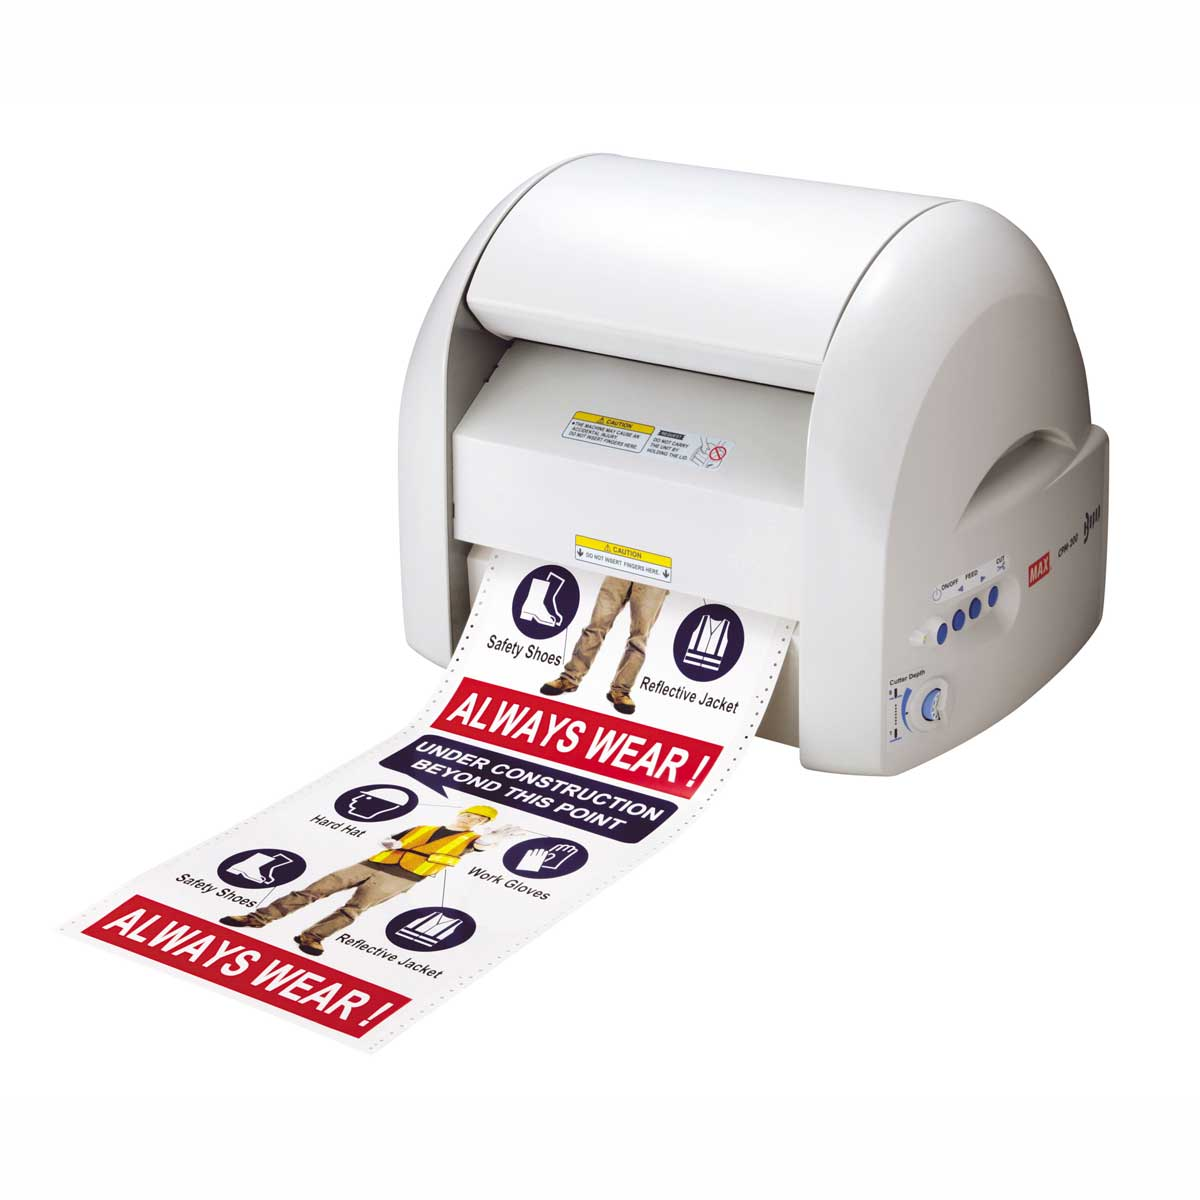 MAX Bepop CPM-200GU Label Printer & Cutter